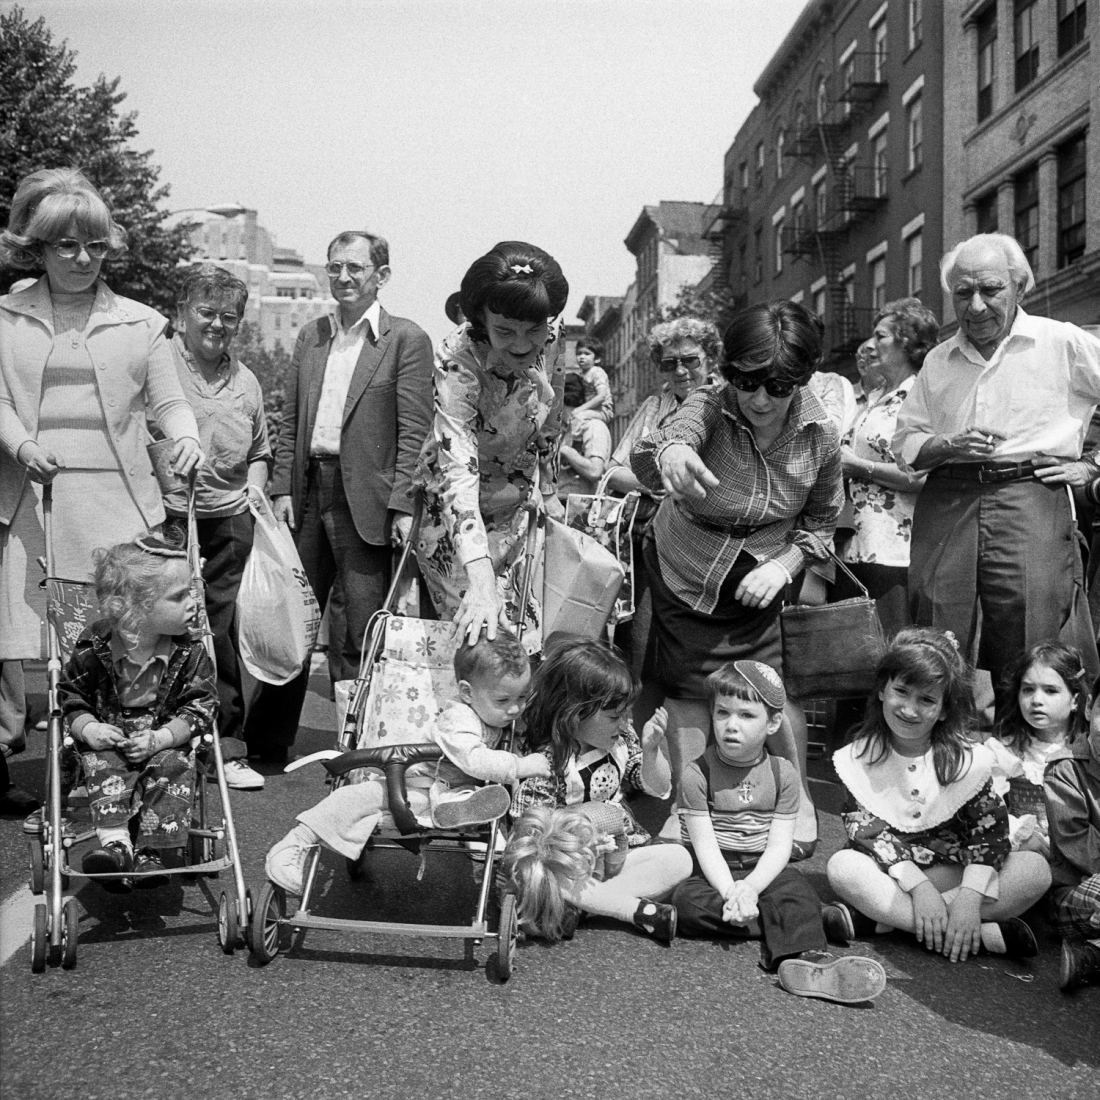 Baby Carriages, Children and Adults at The Lower East Side Street Festival, NY, June 1978 © Meryl Meisler